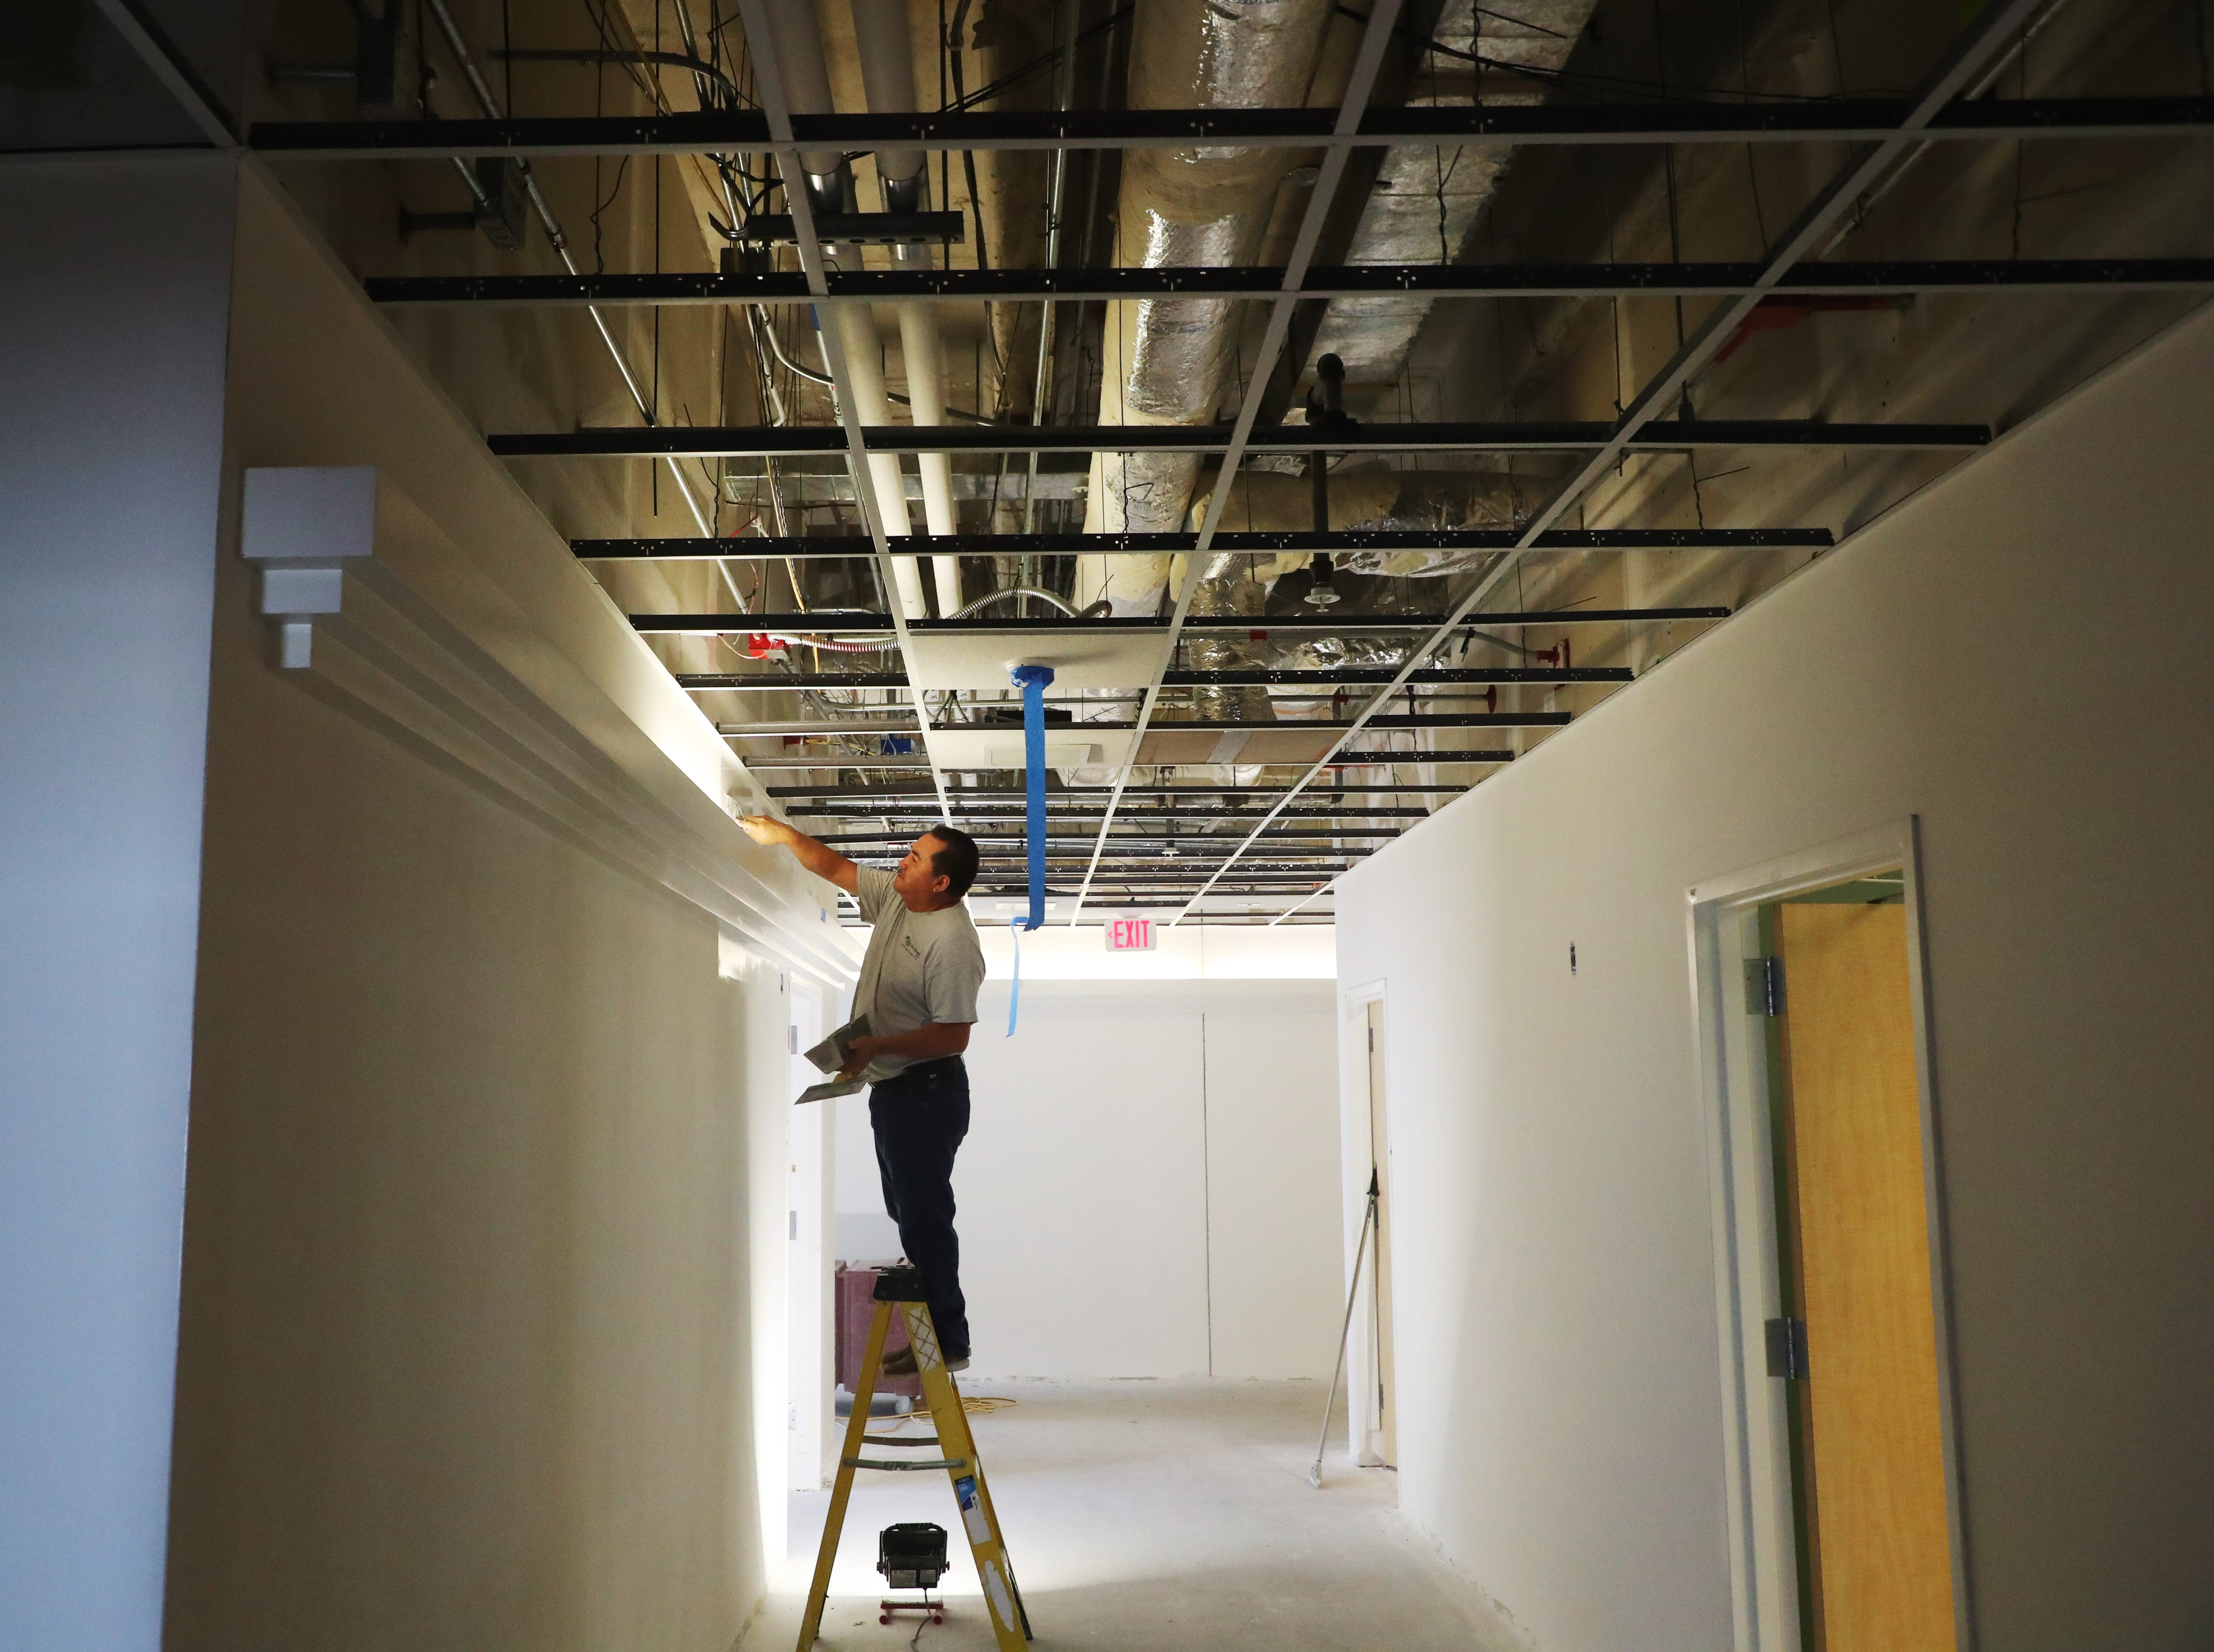 Cecilio Martinez, of Sega Drywall, a sub-contractor for R.D. Johnson Construction works in an area that is being renovated for the expansion of the of obstetrical services and new and renovated OB rooms at HealthPark Medical Center. The health system will now feature 107 OB beds, and all of the newly renovated rooms at HPMC will be fully private with family sleep capabilities. This transition will create 10 additional beds across the health system and as of March 1, 2019, the obstetrical service line currently offered at Gulf Coast Medical Center will be transferred to HealthPark.